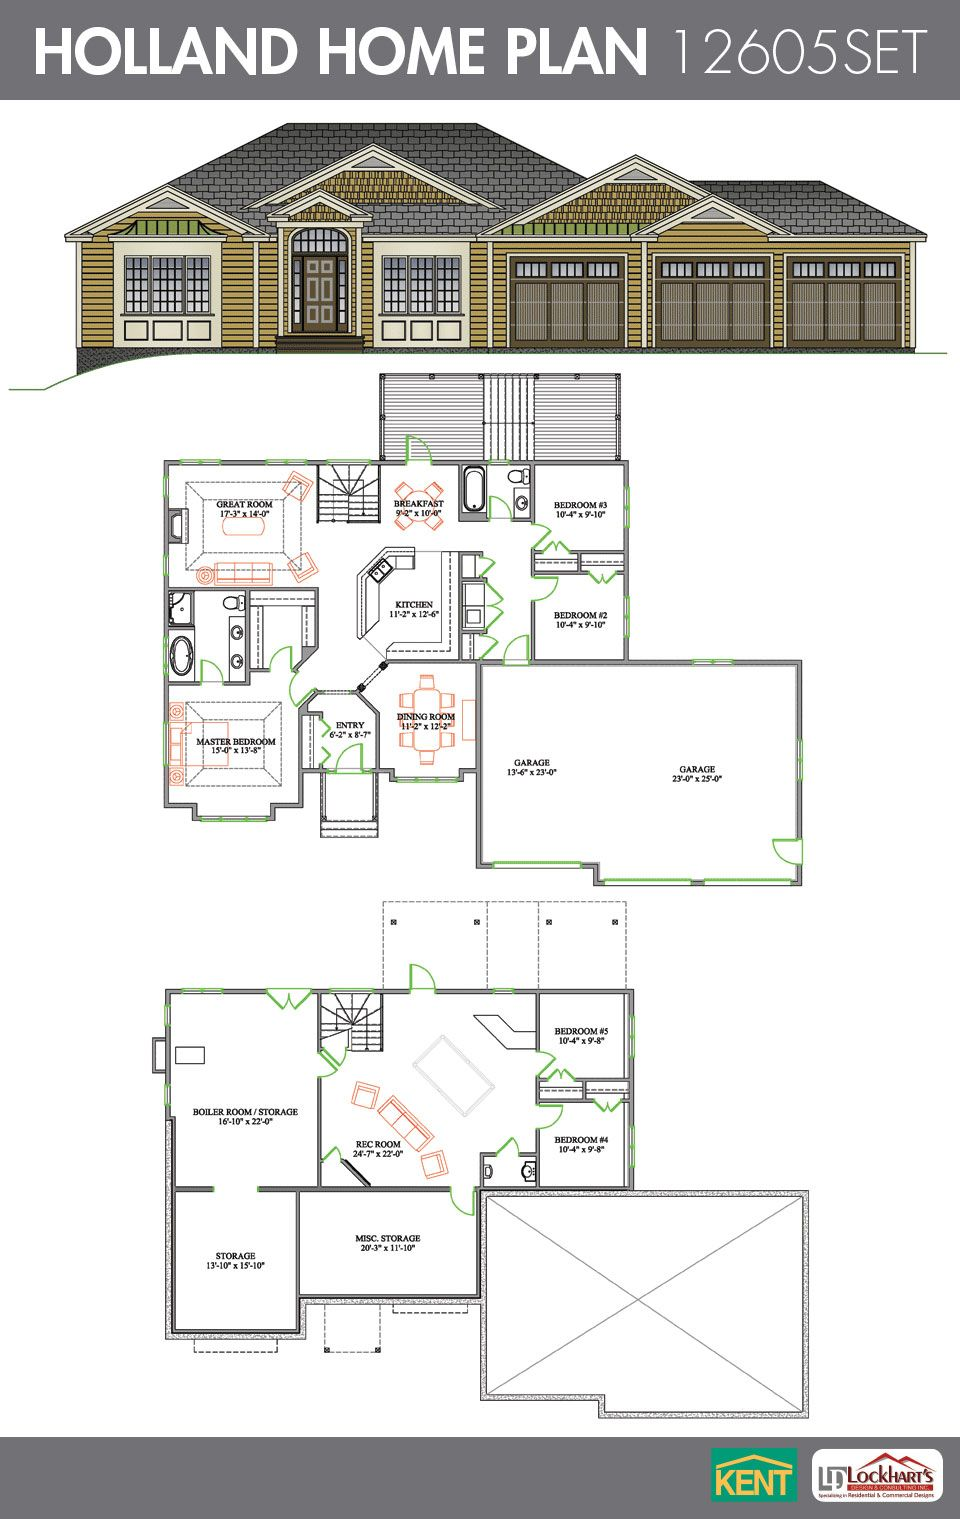 Holland Home Plan House Plans Kent Building Ranch House Plans